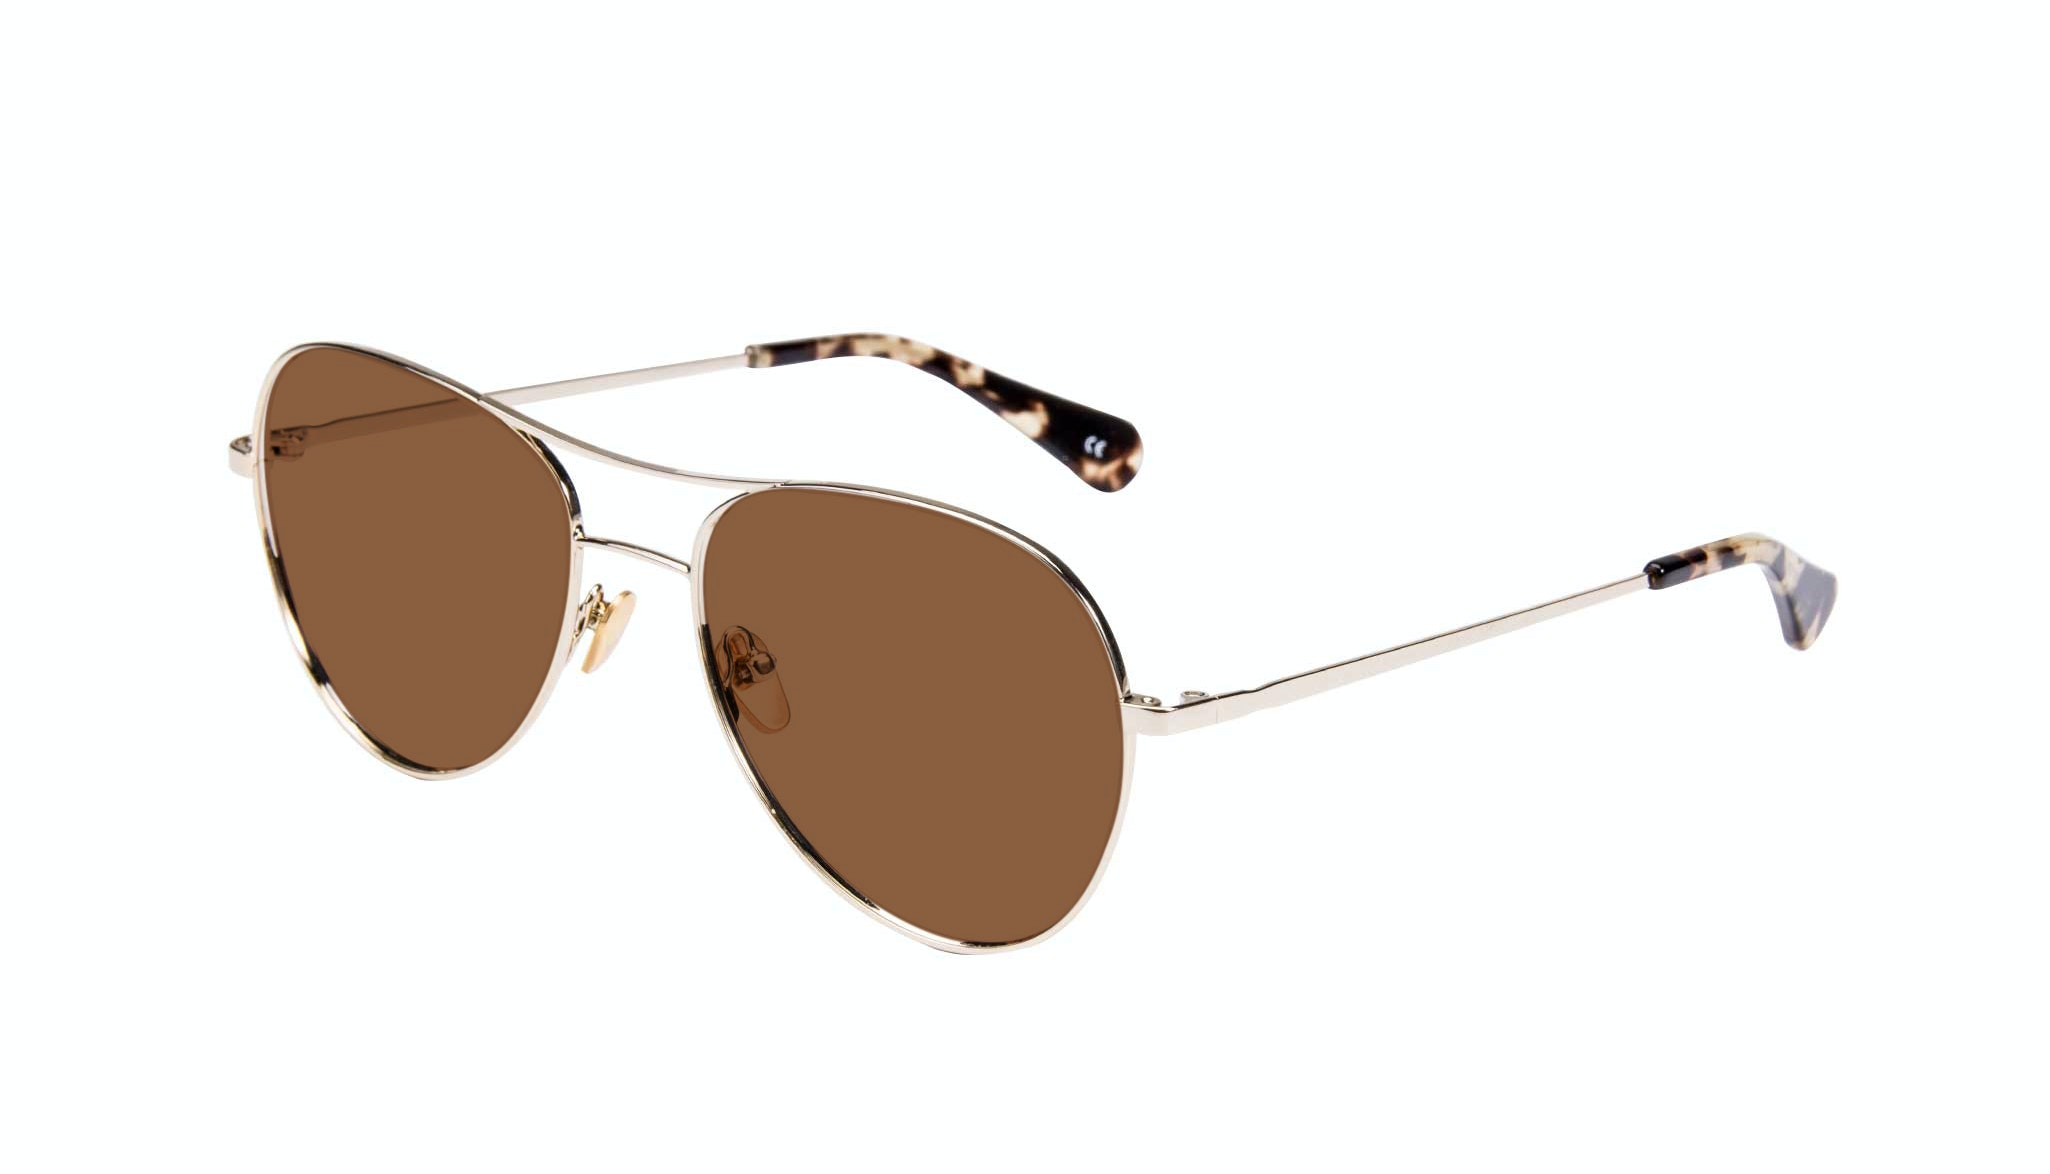 Affordable Fashion Glasses Aviator Sunglasses Women Want Gold Tilt